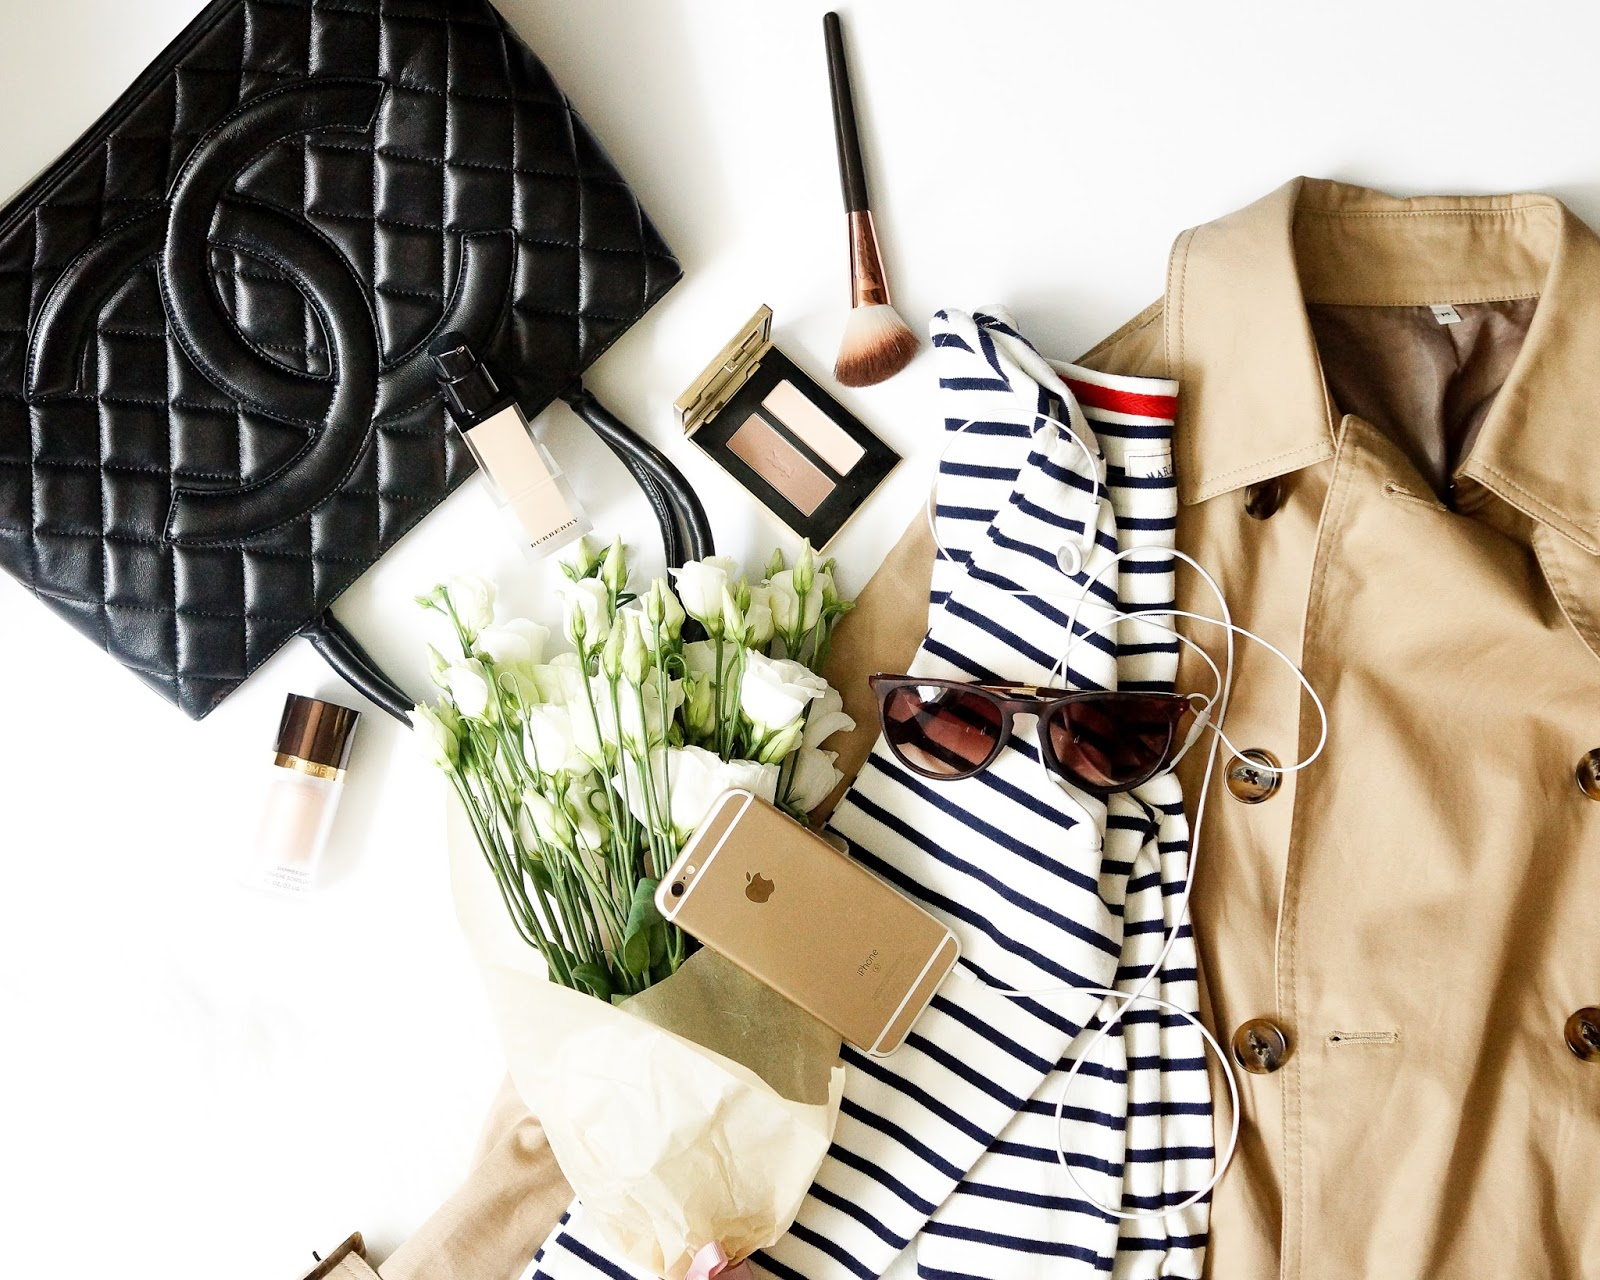 10-things-that-have-made-me-happy-lifestyle-flatlay-wellbeing-wellness